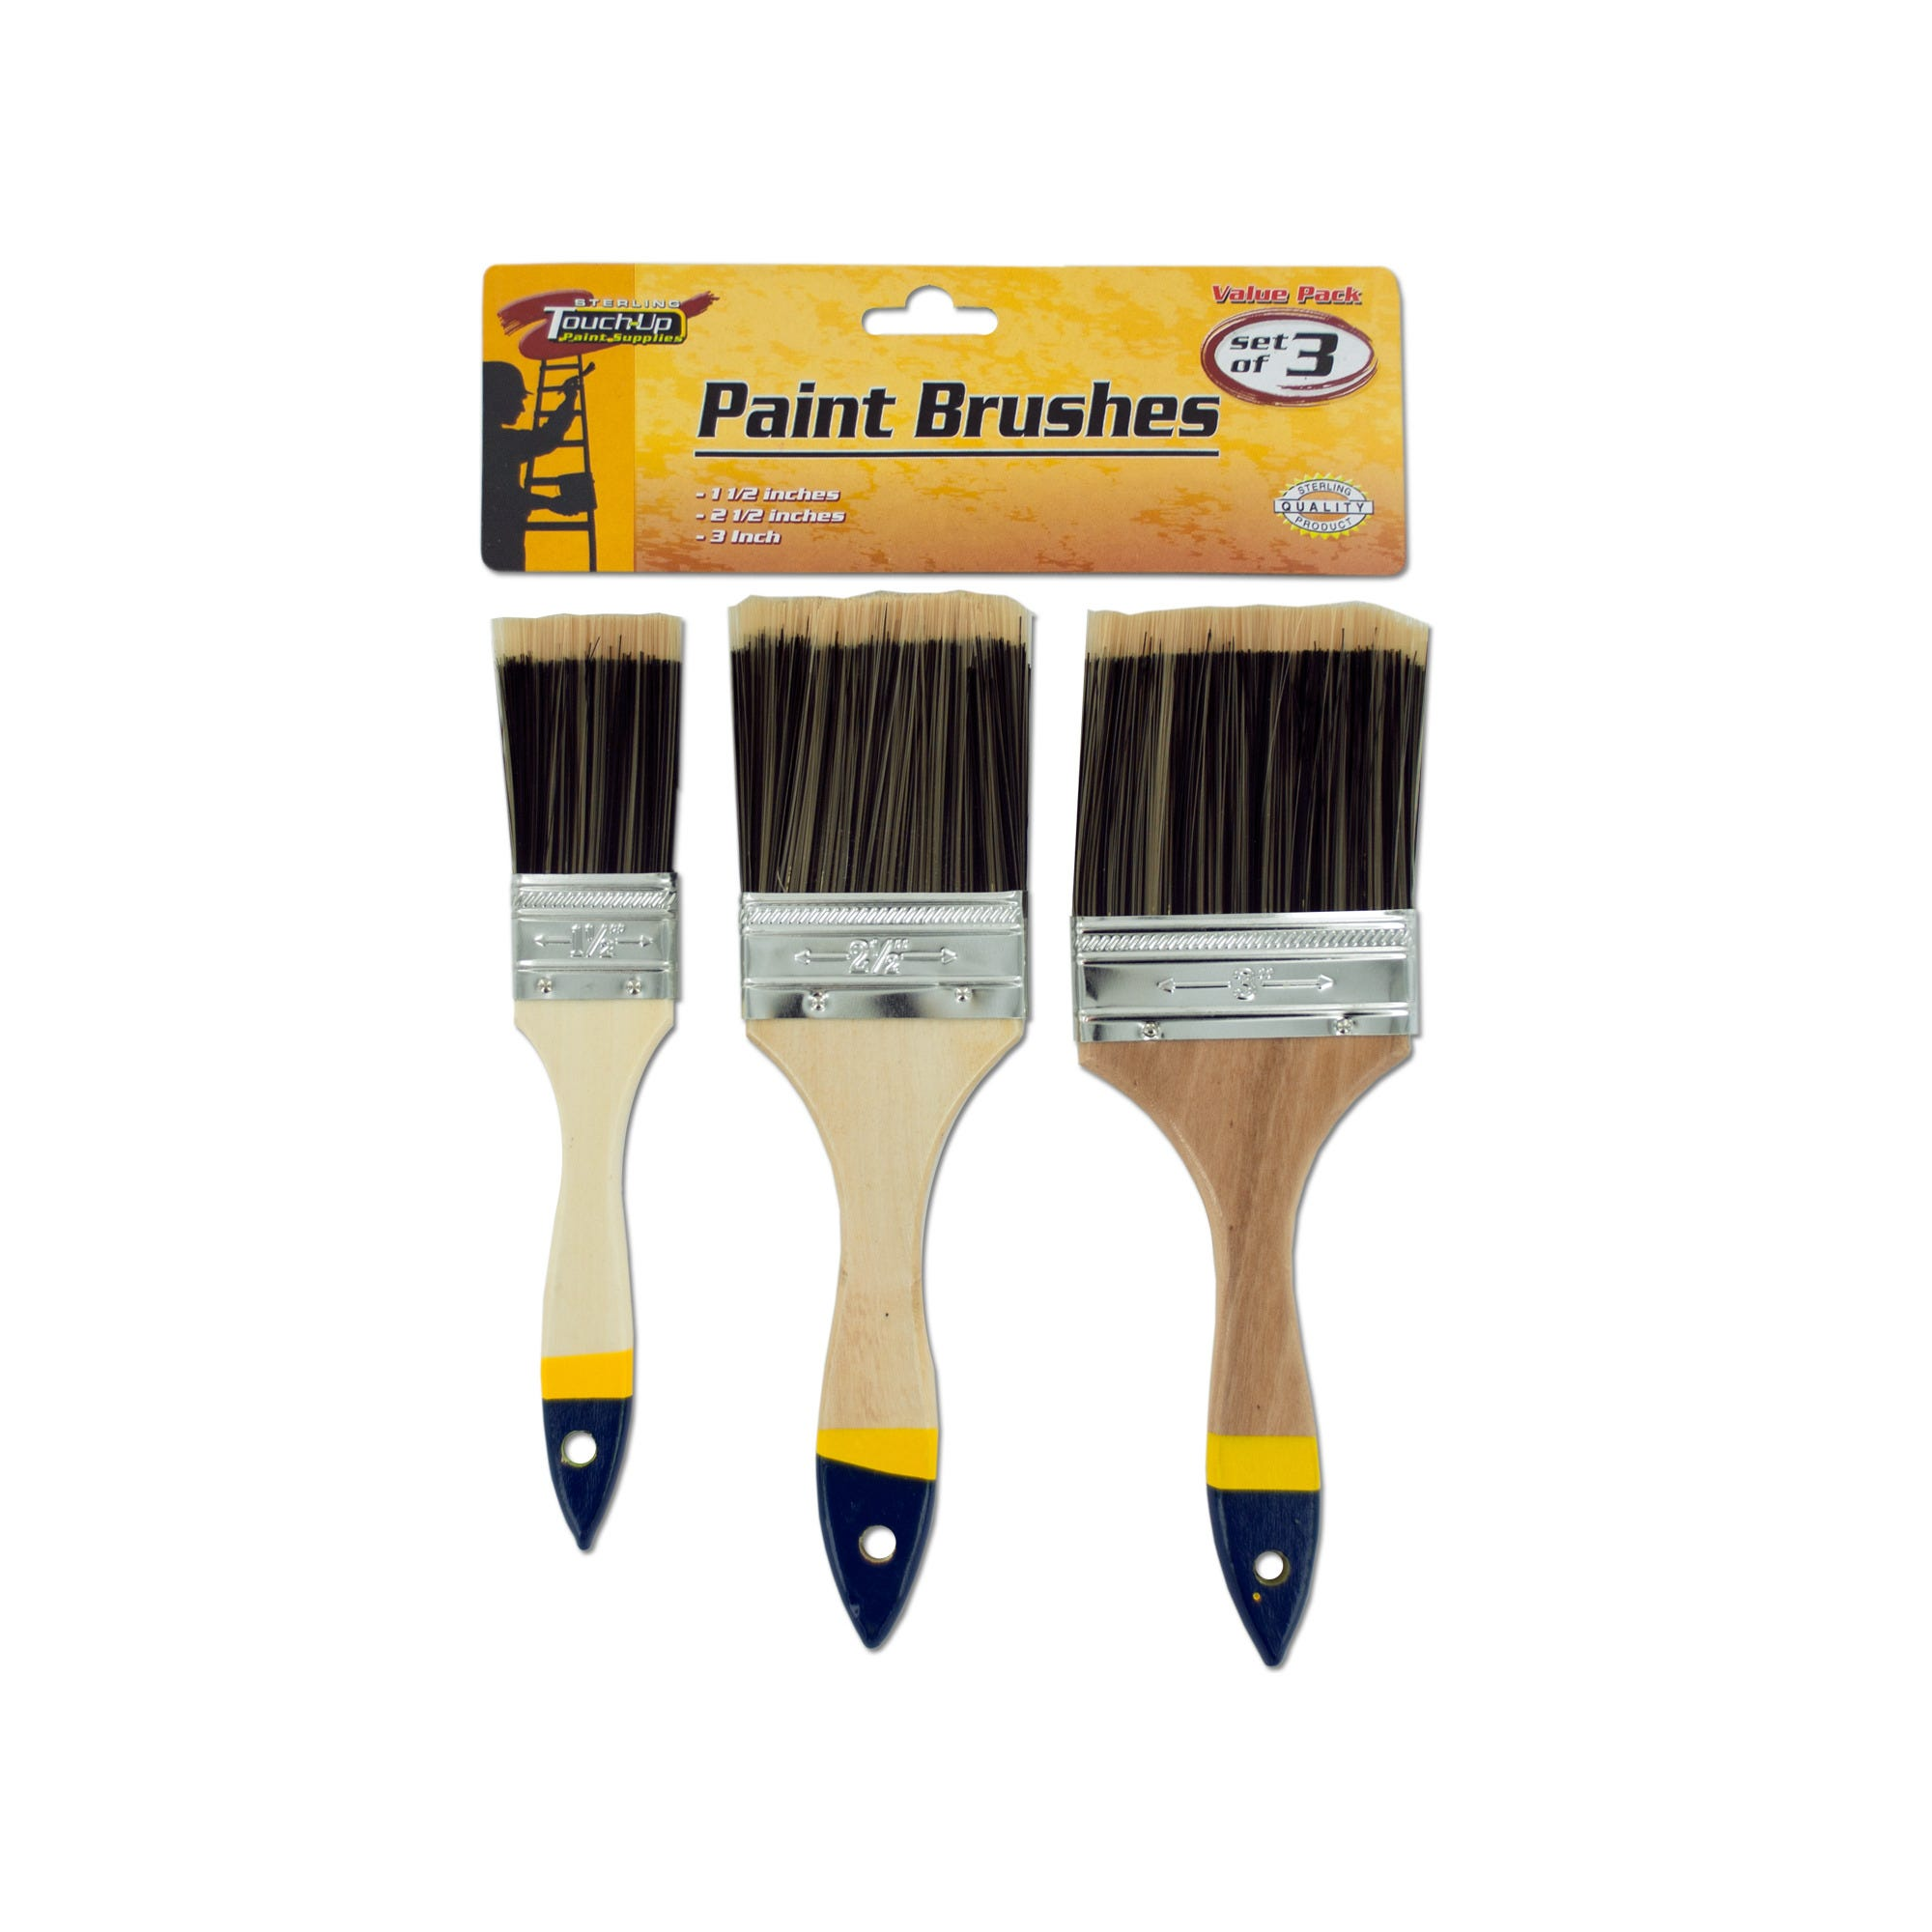 Paint Brush Set with Wood Handles- Qty 18